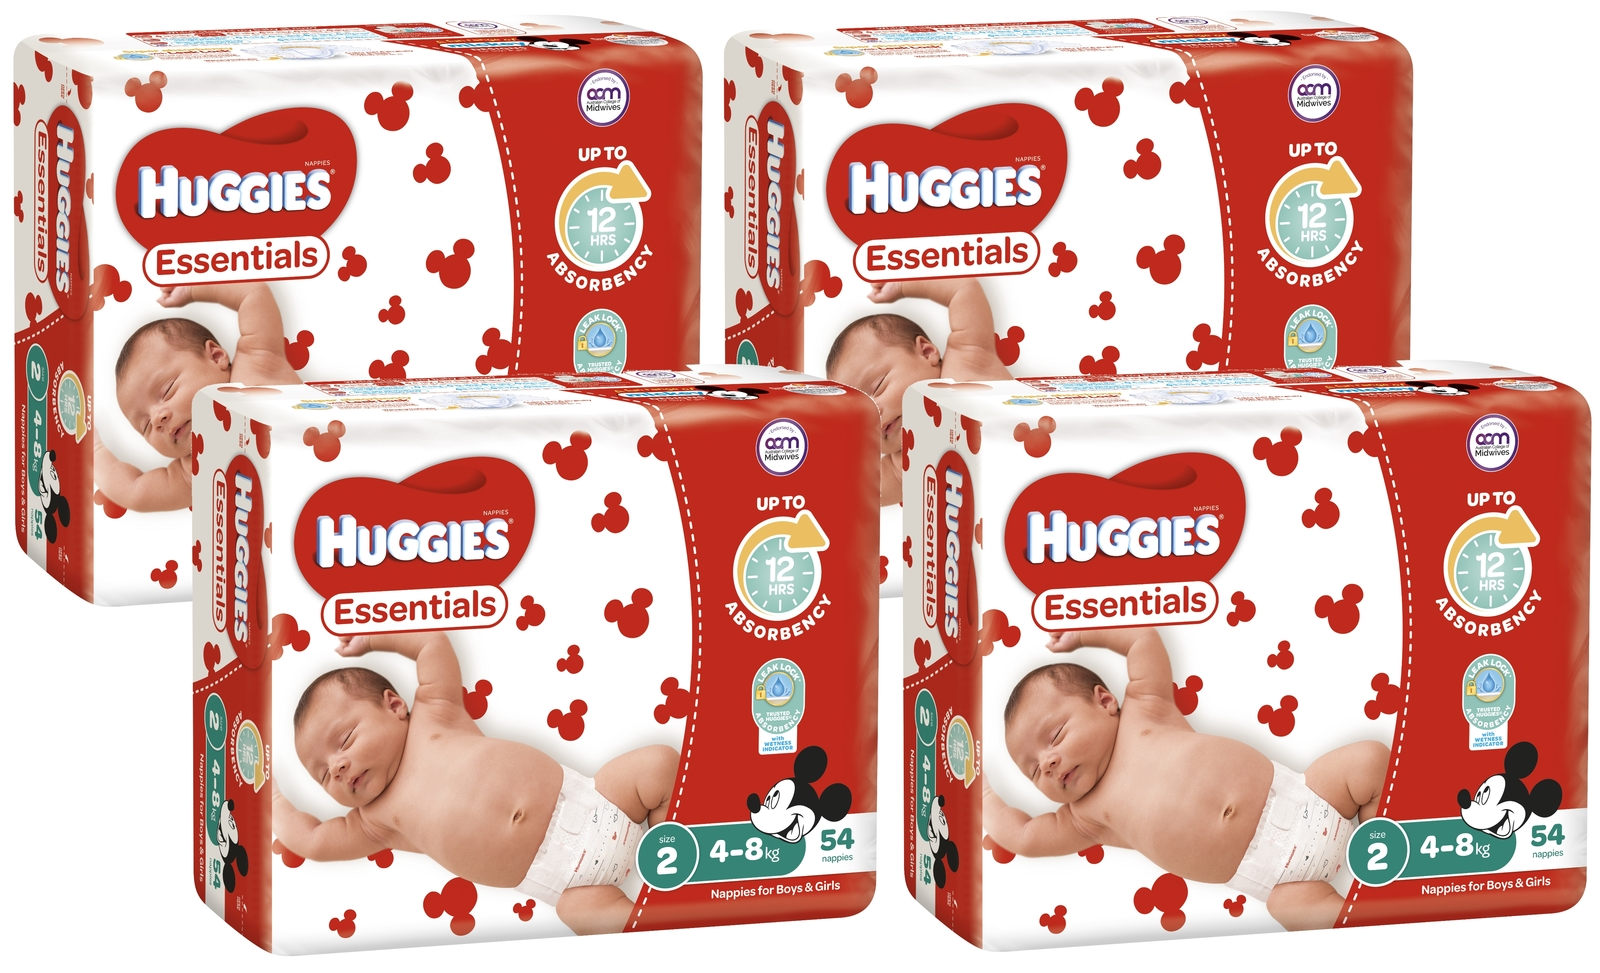 Huggies Essentials Nappies Bulk Value Box - Size 2 Infant (216) image